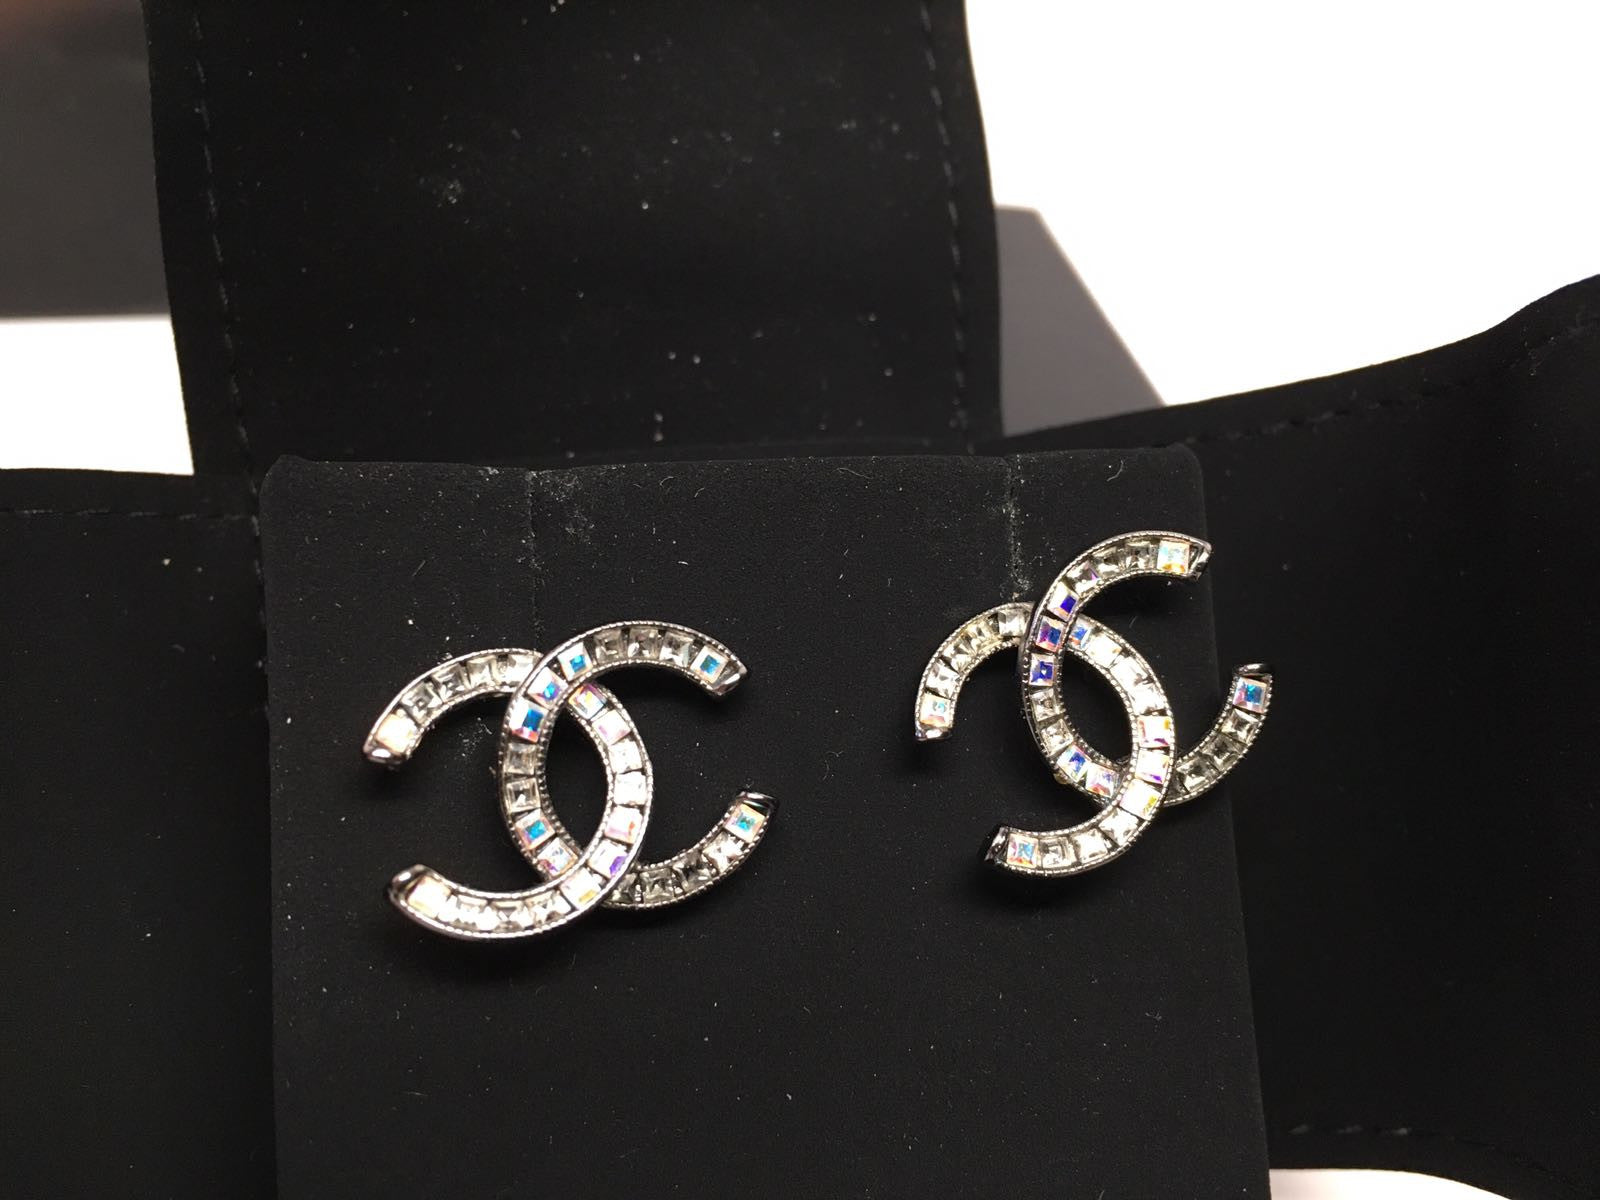 Chanel Cc Timeless Crystal Earrings Hebster Boutique